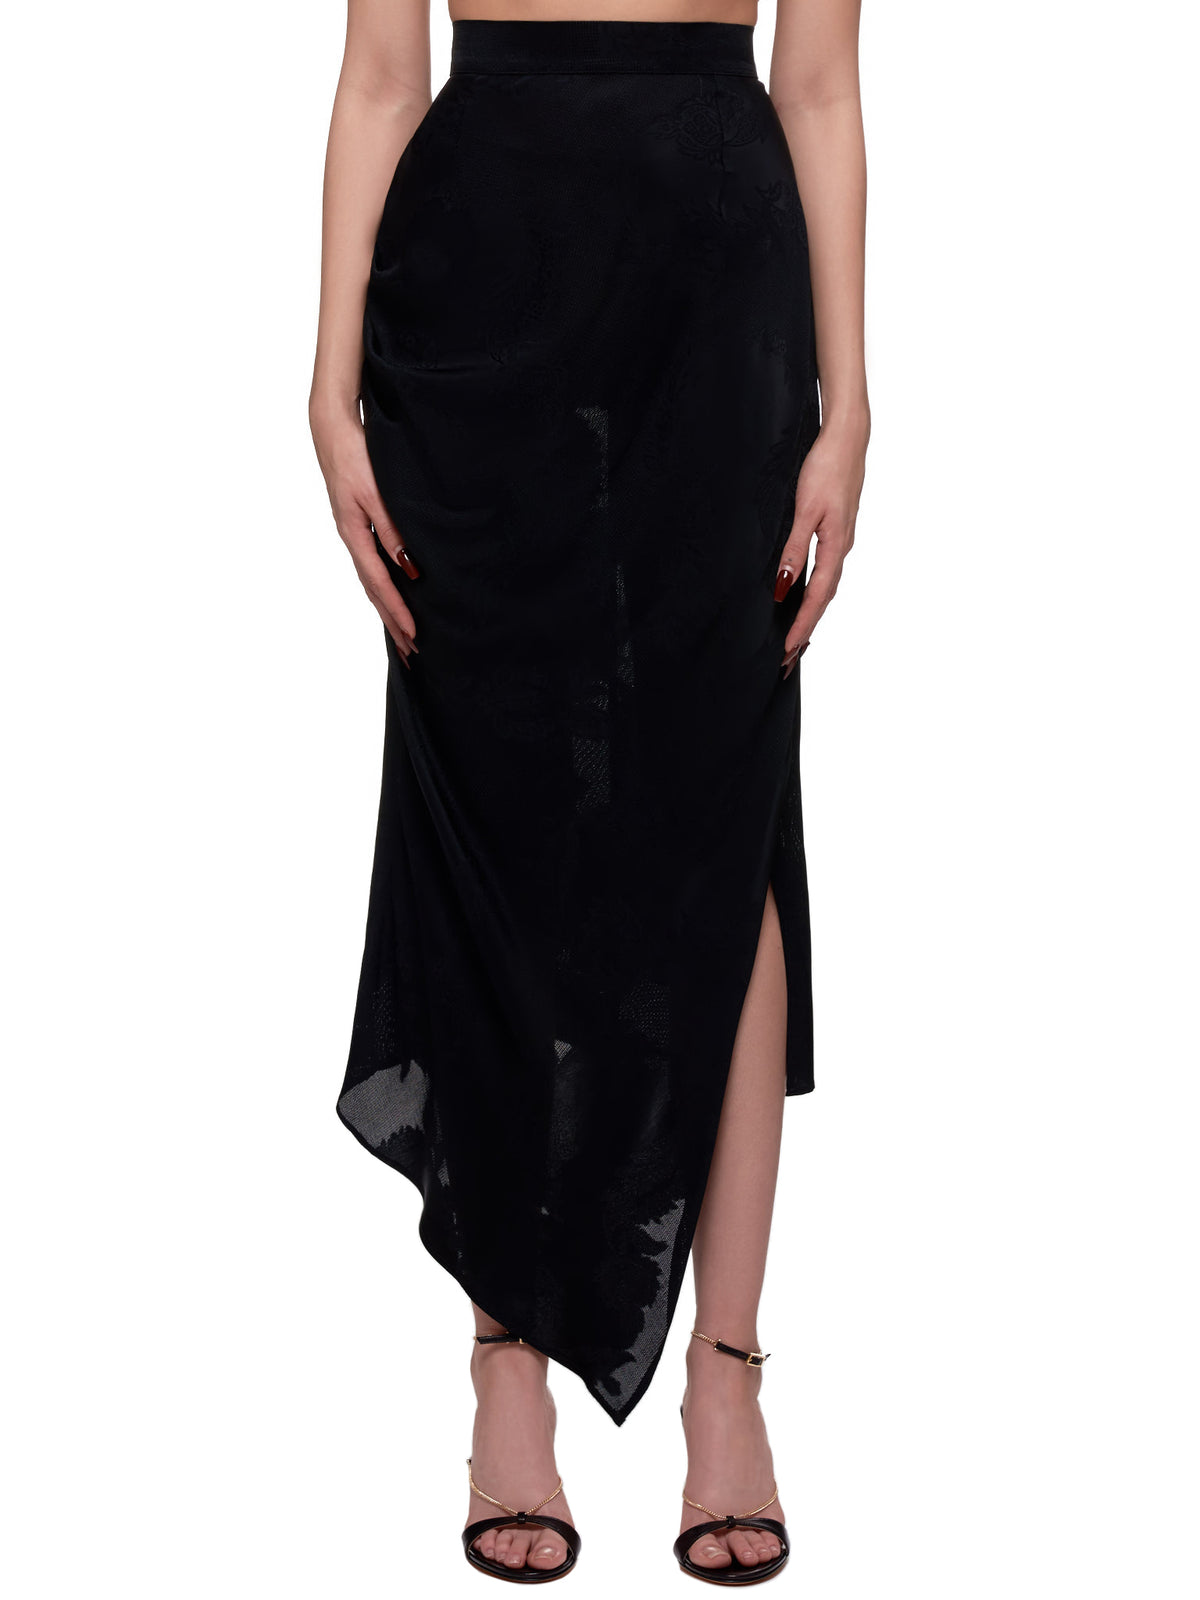 Embroidered Mermaid Maxi Skirt (SSS2001-BLACK)